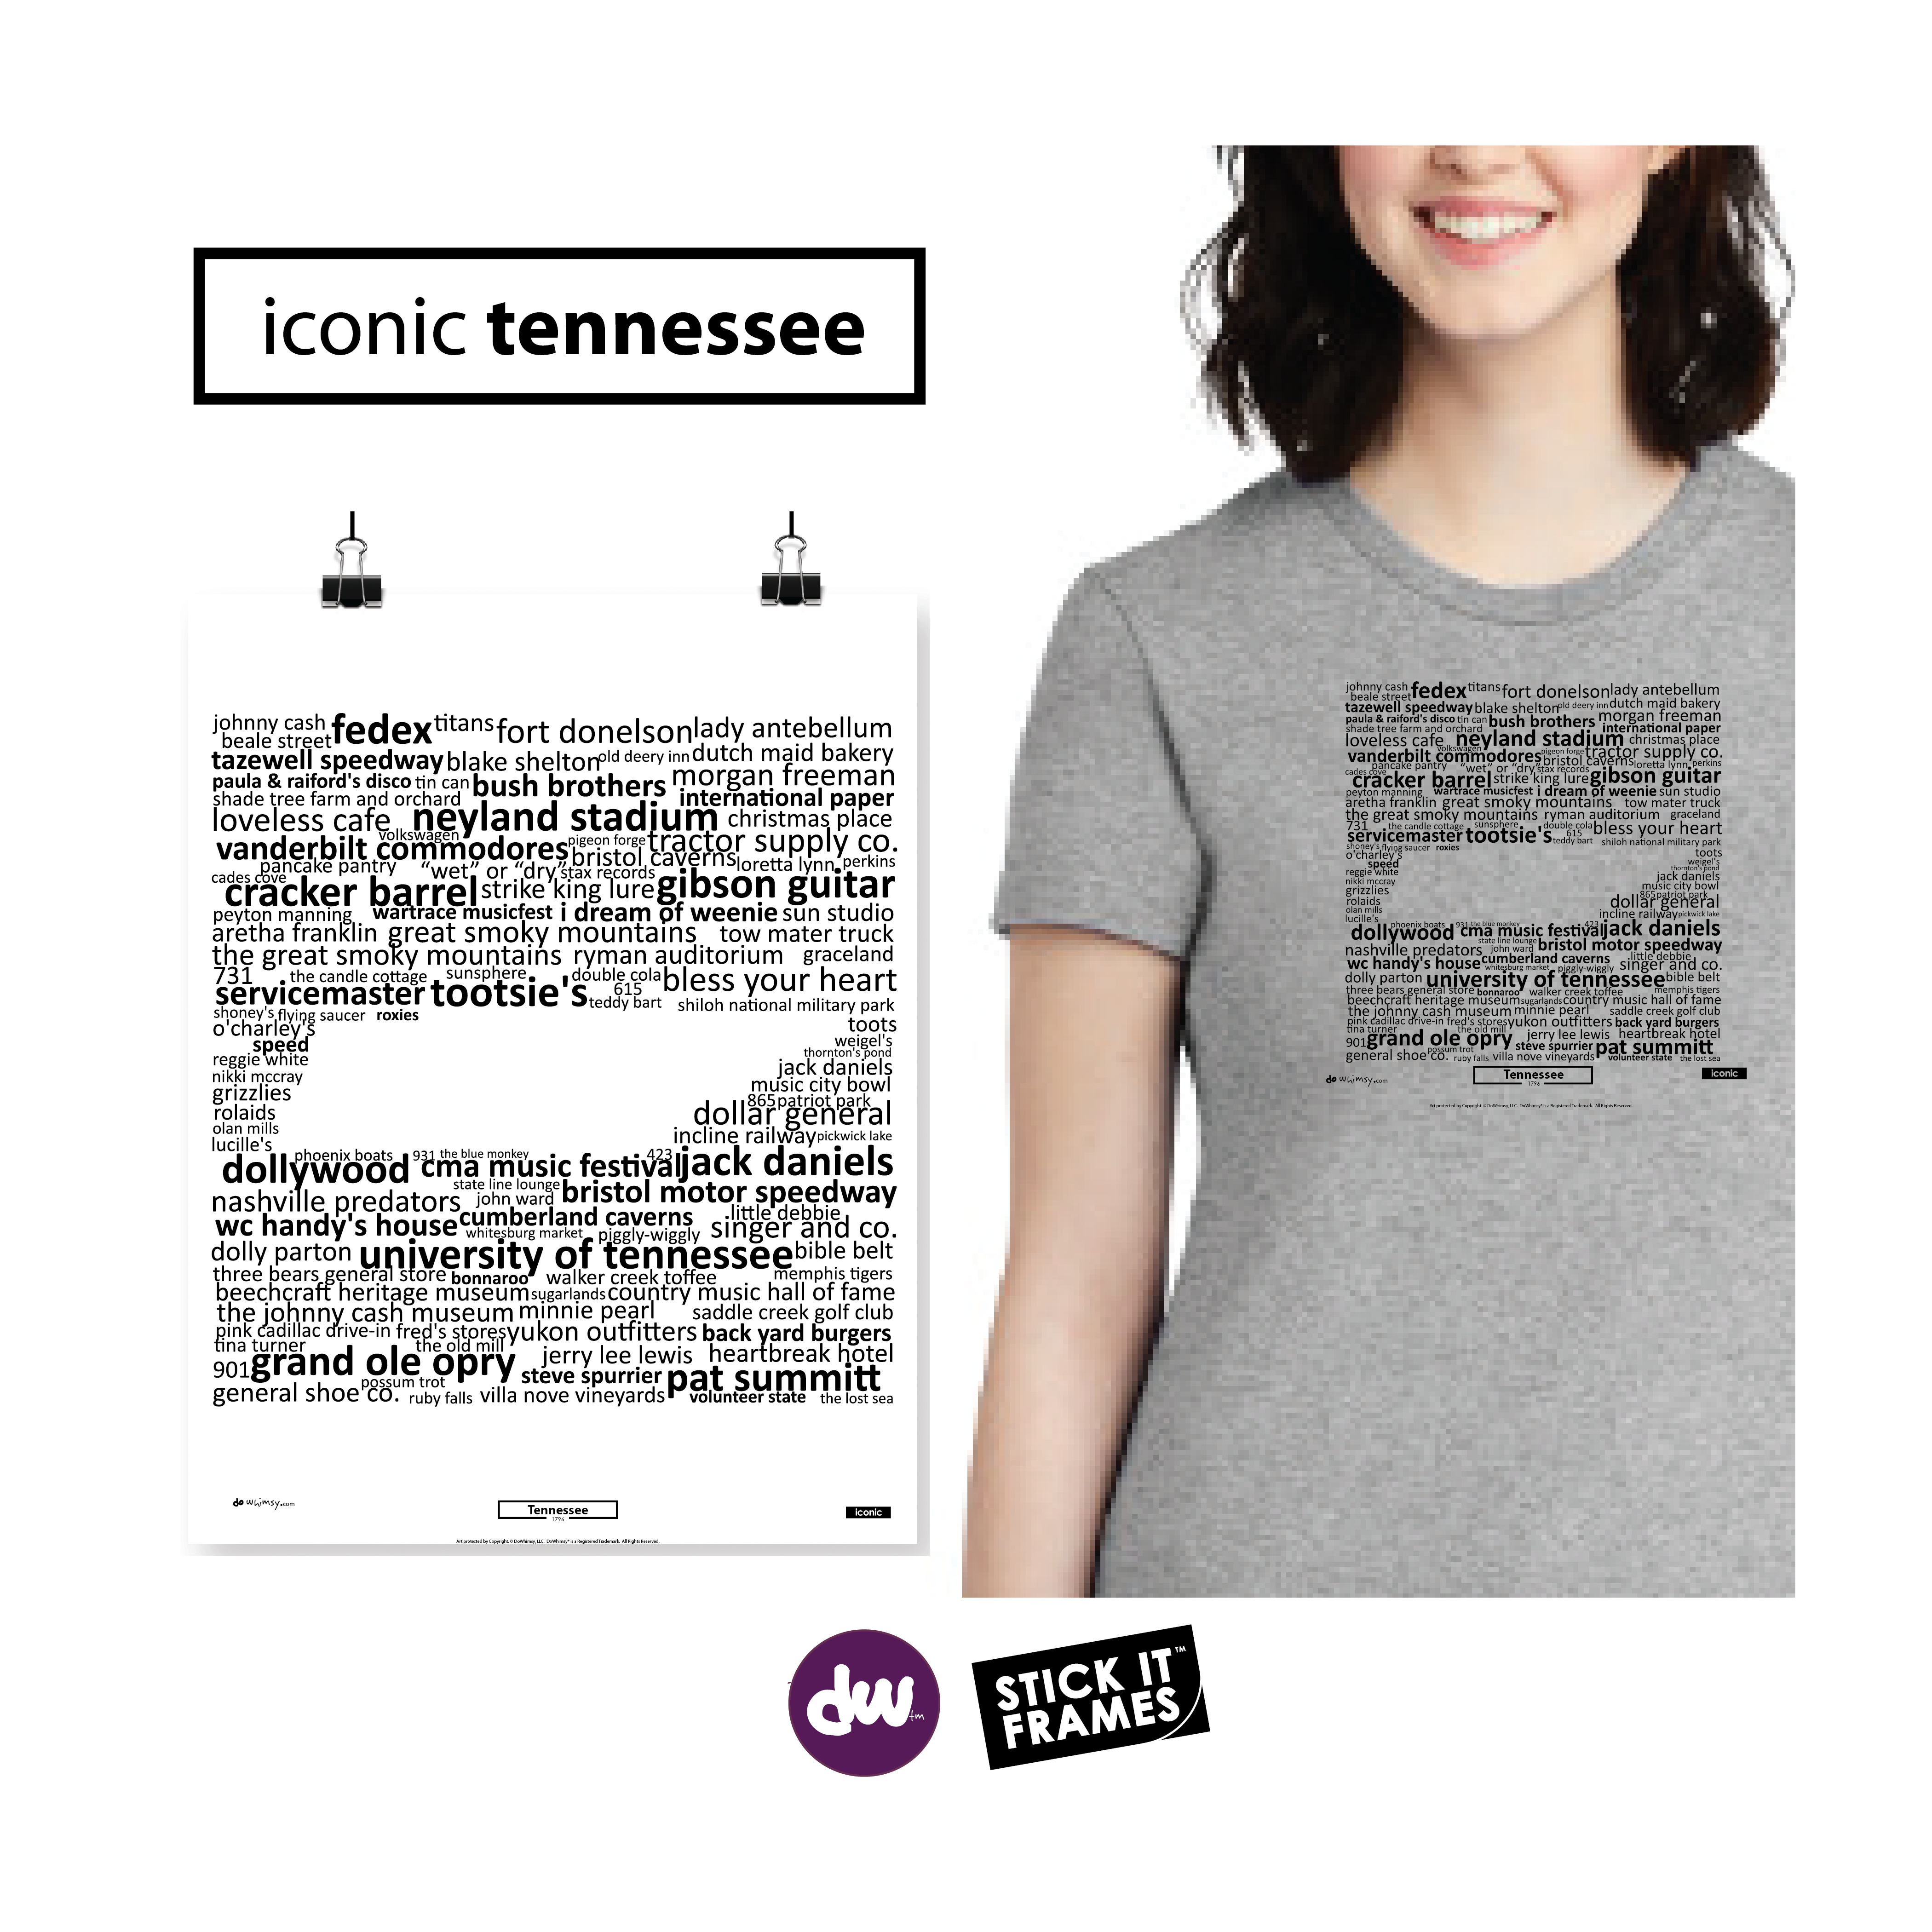 Iconic Tennessee - All Products (Shirt, Art, Frames (R))